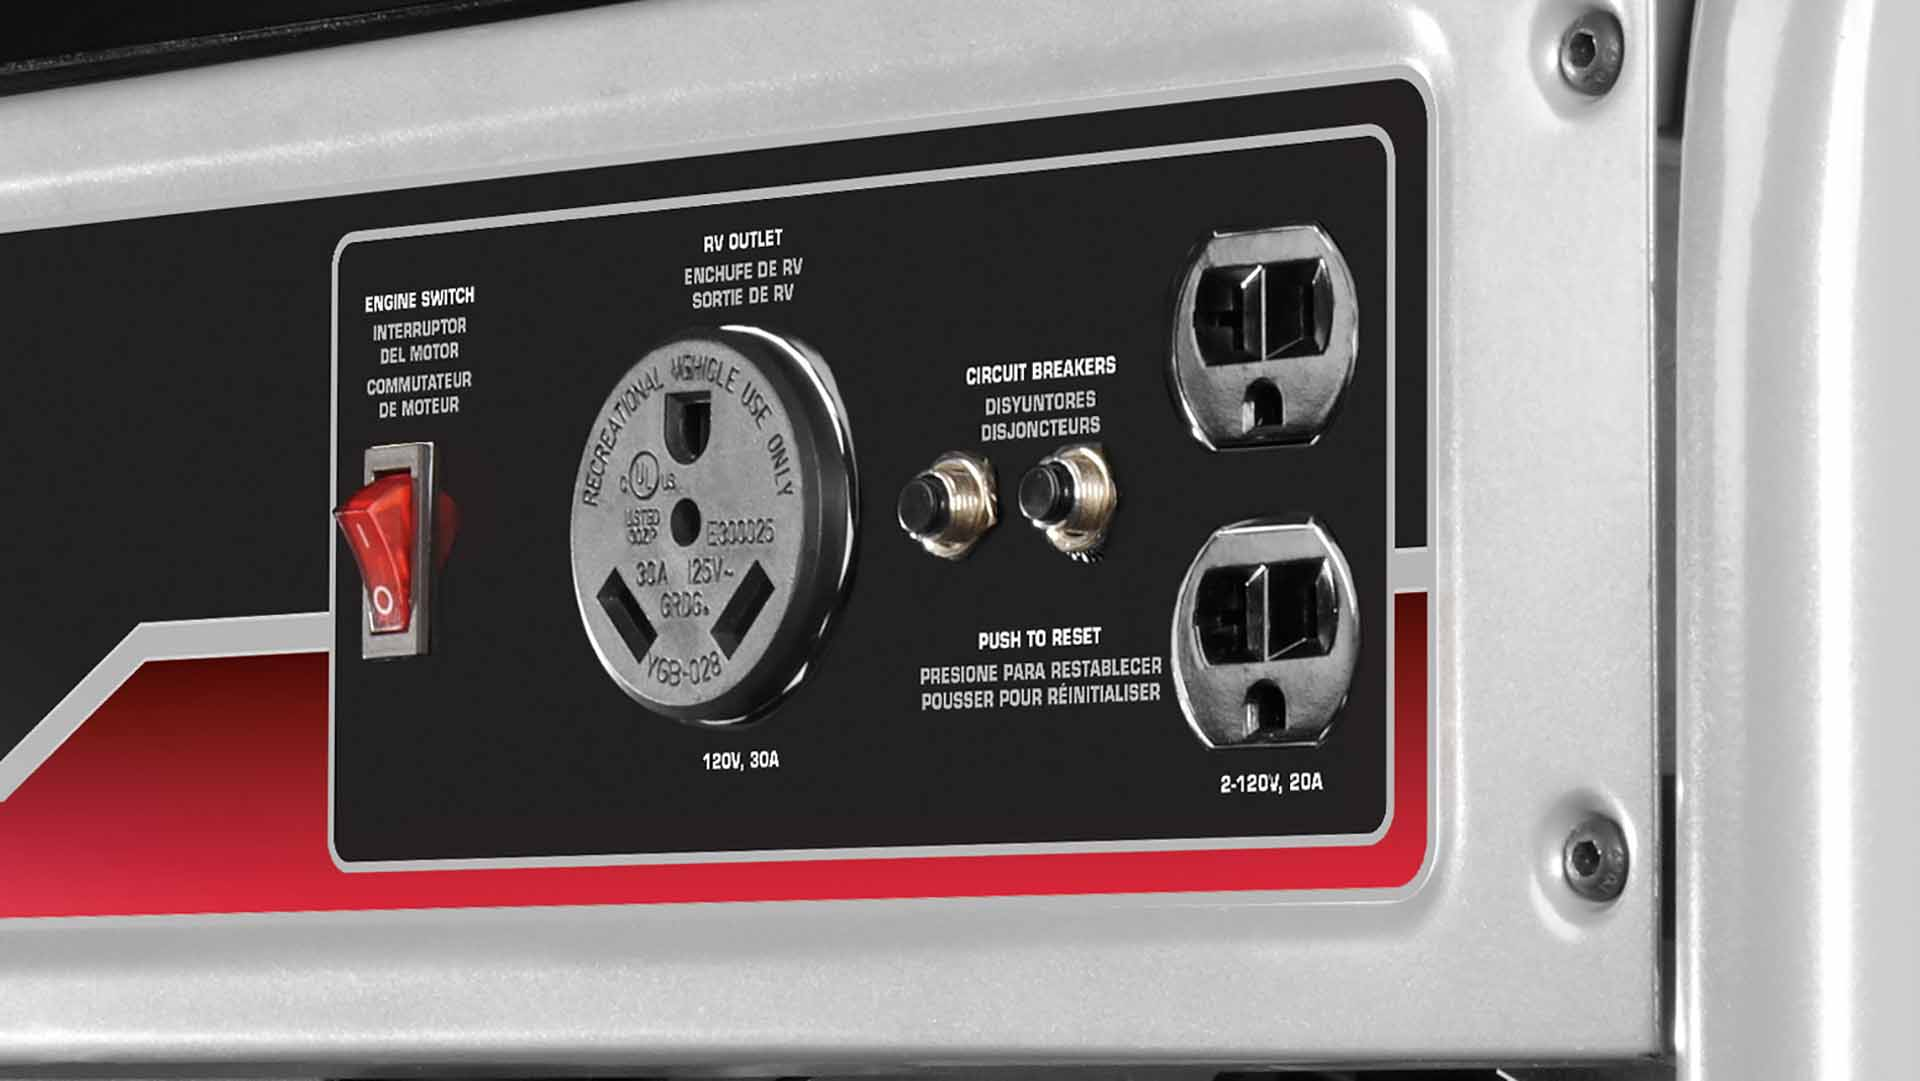 3500 Watt Portable Generator Diagram Parts List For Model 92500to9259901100280 Briggsstratton Multi Featured Control Panel With Rv Outlet